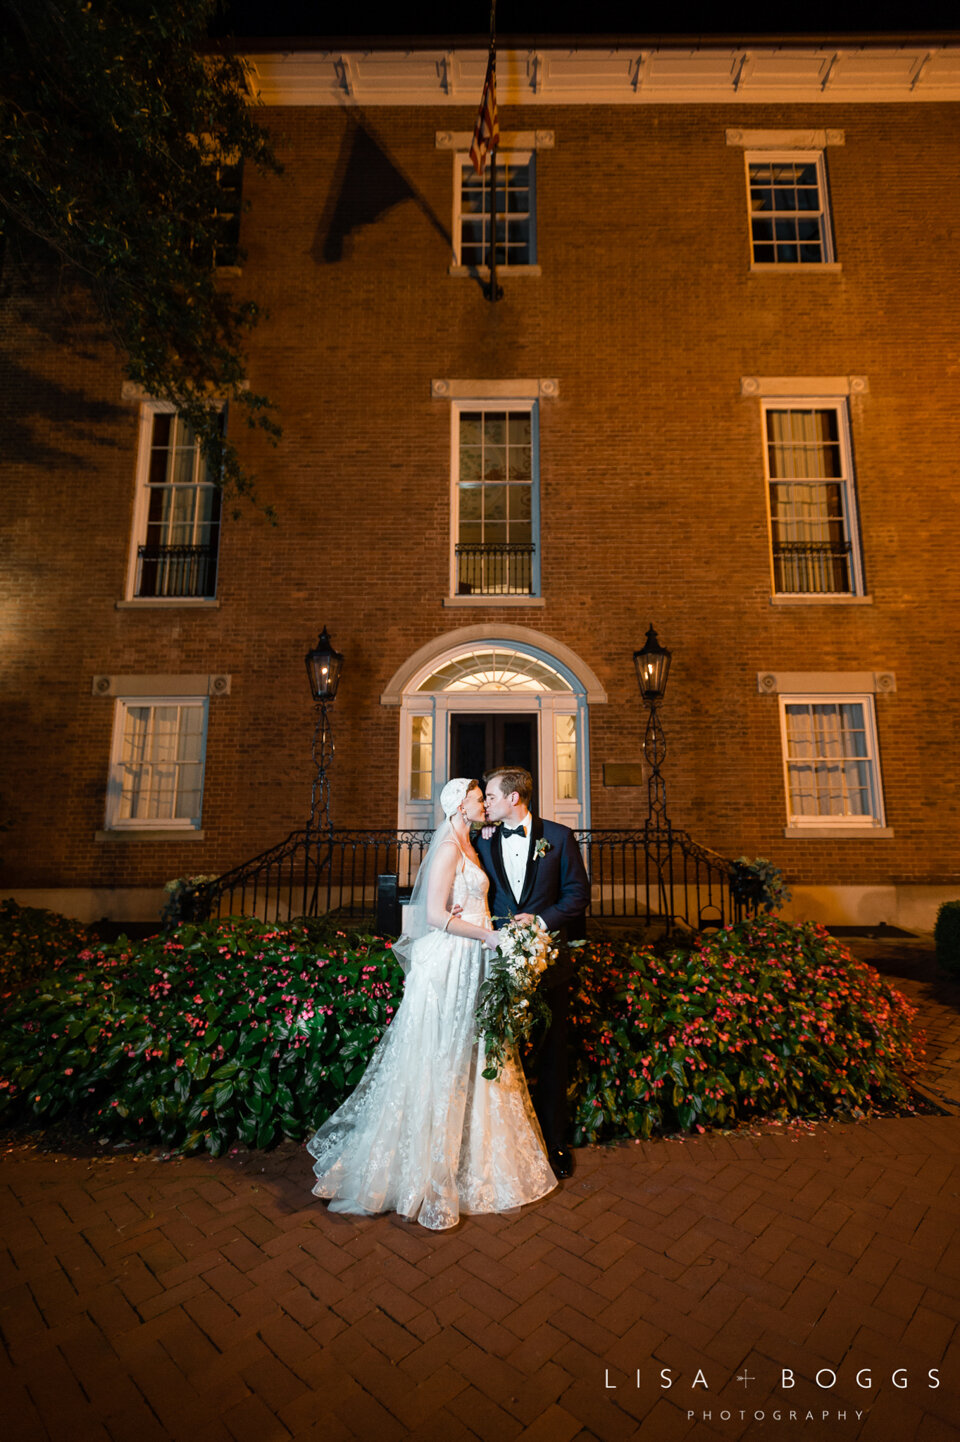 Arielle & Hugh's Decatur House Wedding